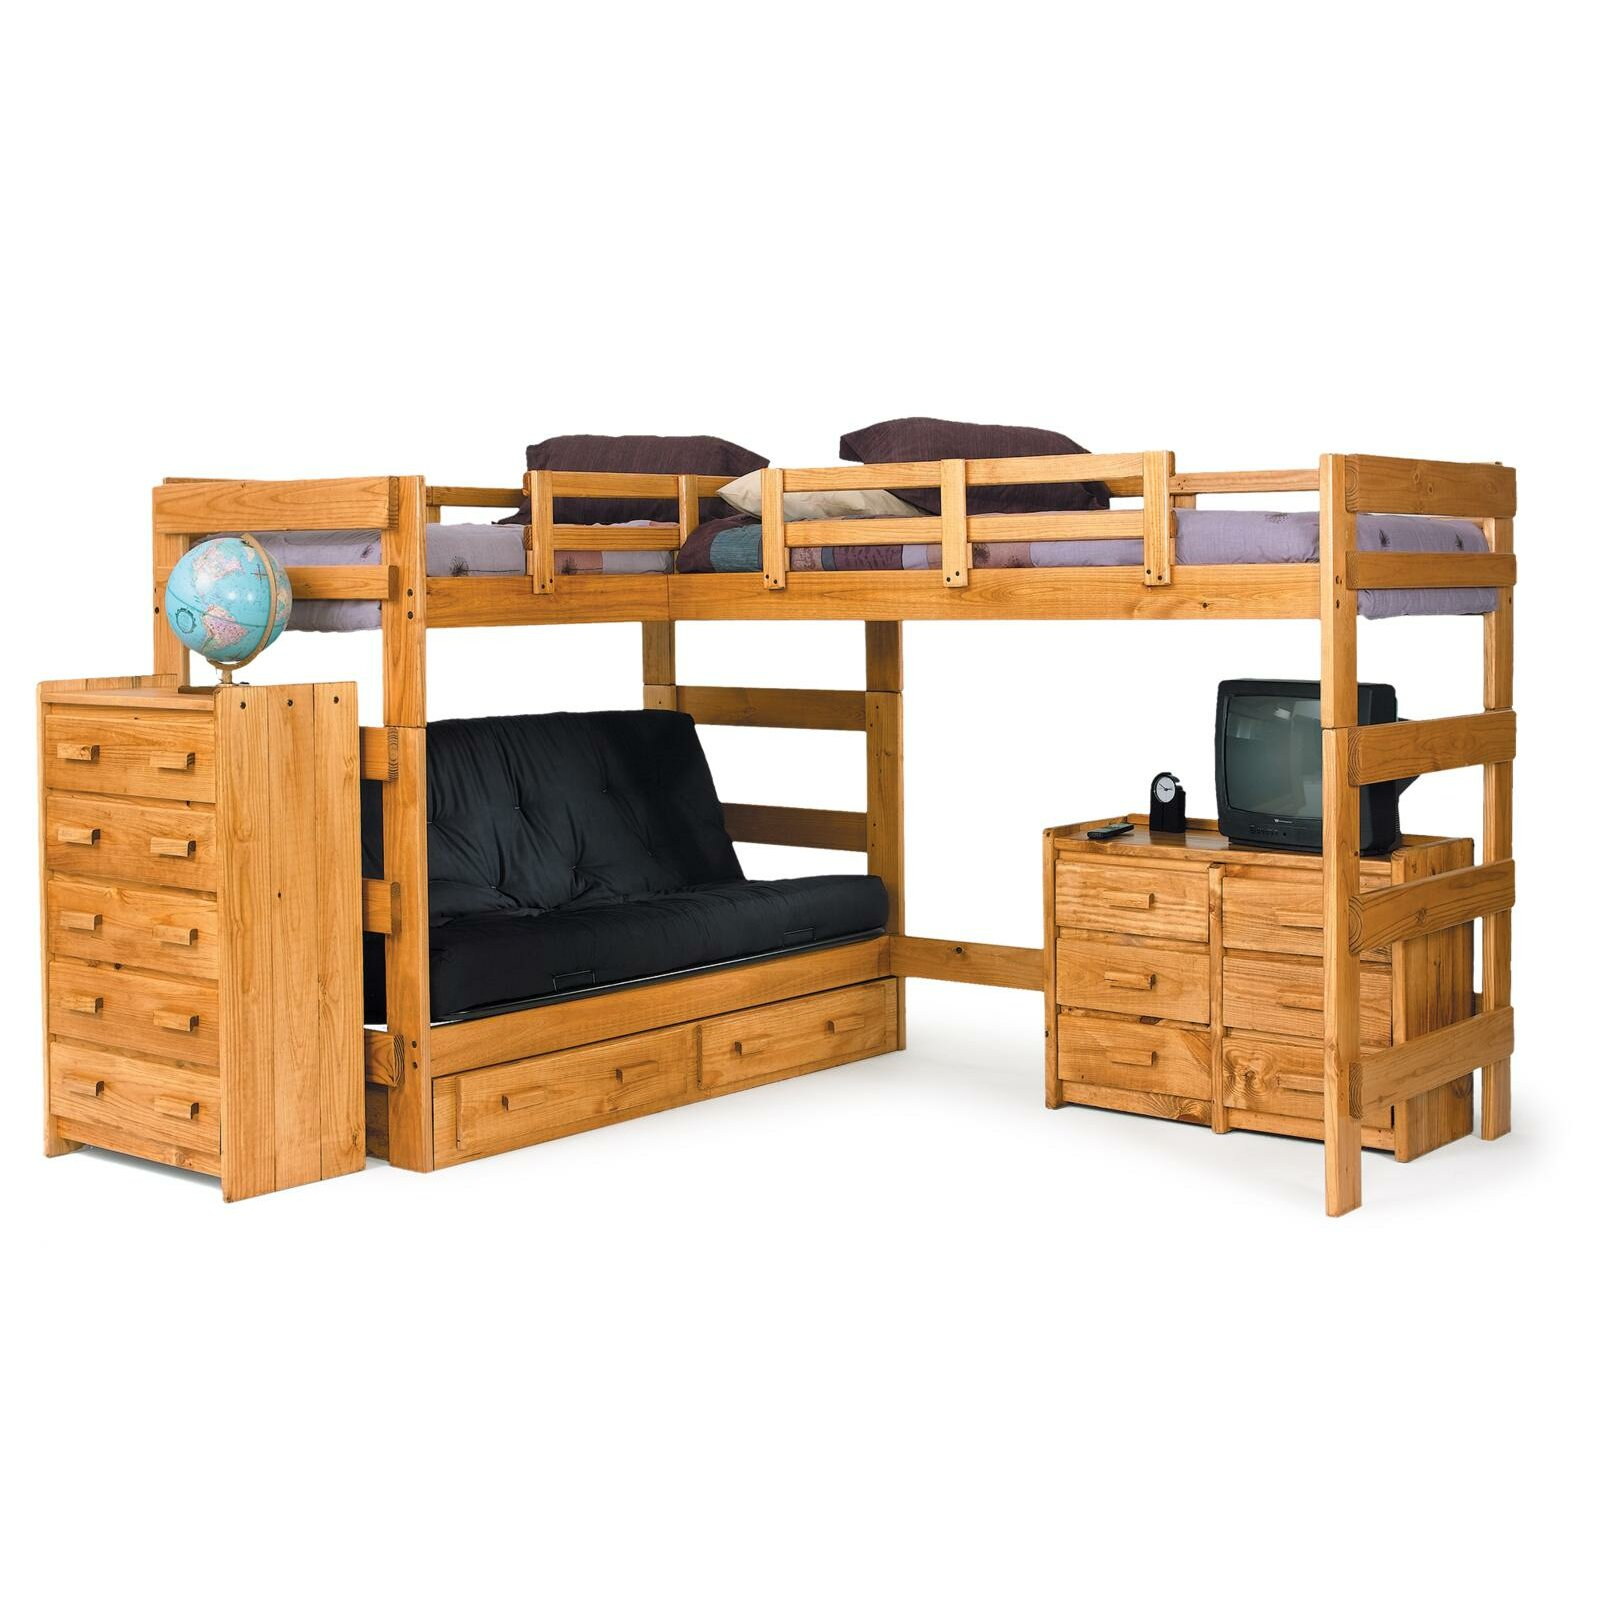 Chelsea home l shaped bunk bed customizable bedroom set for Loft furniture